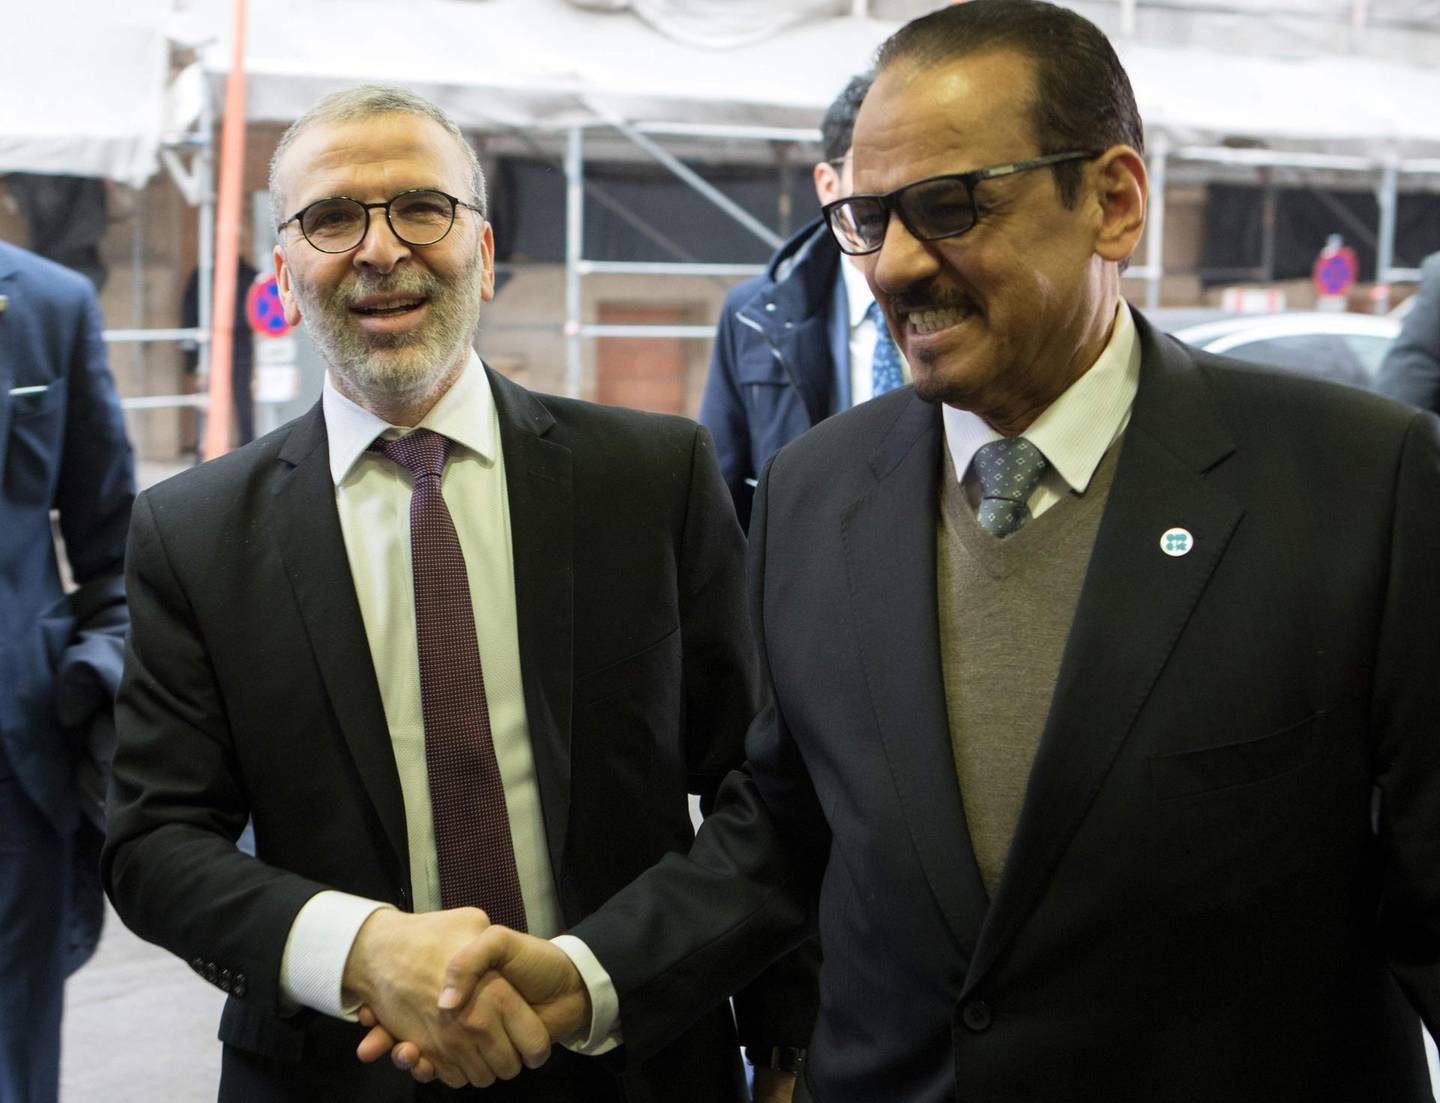 Libya's Mustafa Sanalla, Chairman of the National Oil Corporation (L) arrives for the 178th meeting of the Organization of Petroleum Exporting Countries (OPEC) in Vienna, Austria, on March 6, 2020.  All eyes are on Russia at the gathering of OPEC countries and their allies, with the cartel hoping to convince Moscow to back drastic production cuts to counter the effects of the coronavirus outbreak. / AFP / ALEX HALADA